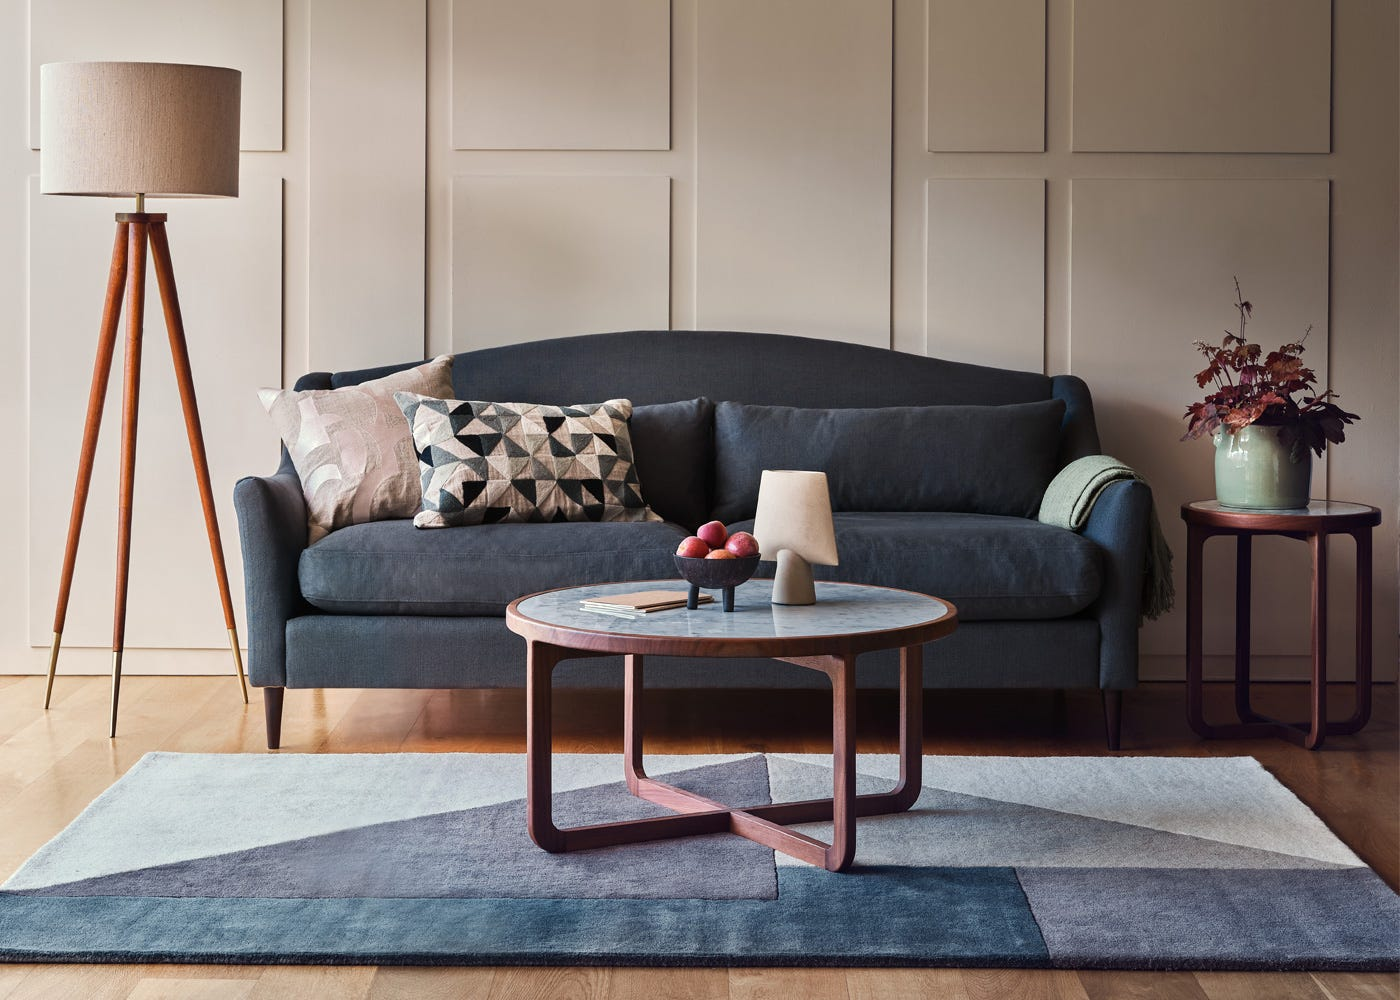 Paired with the Somerset Sofa and Anais furniture